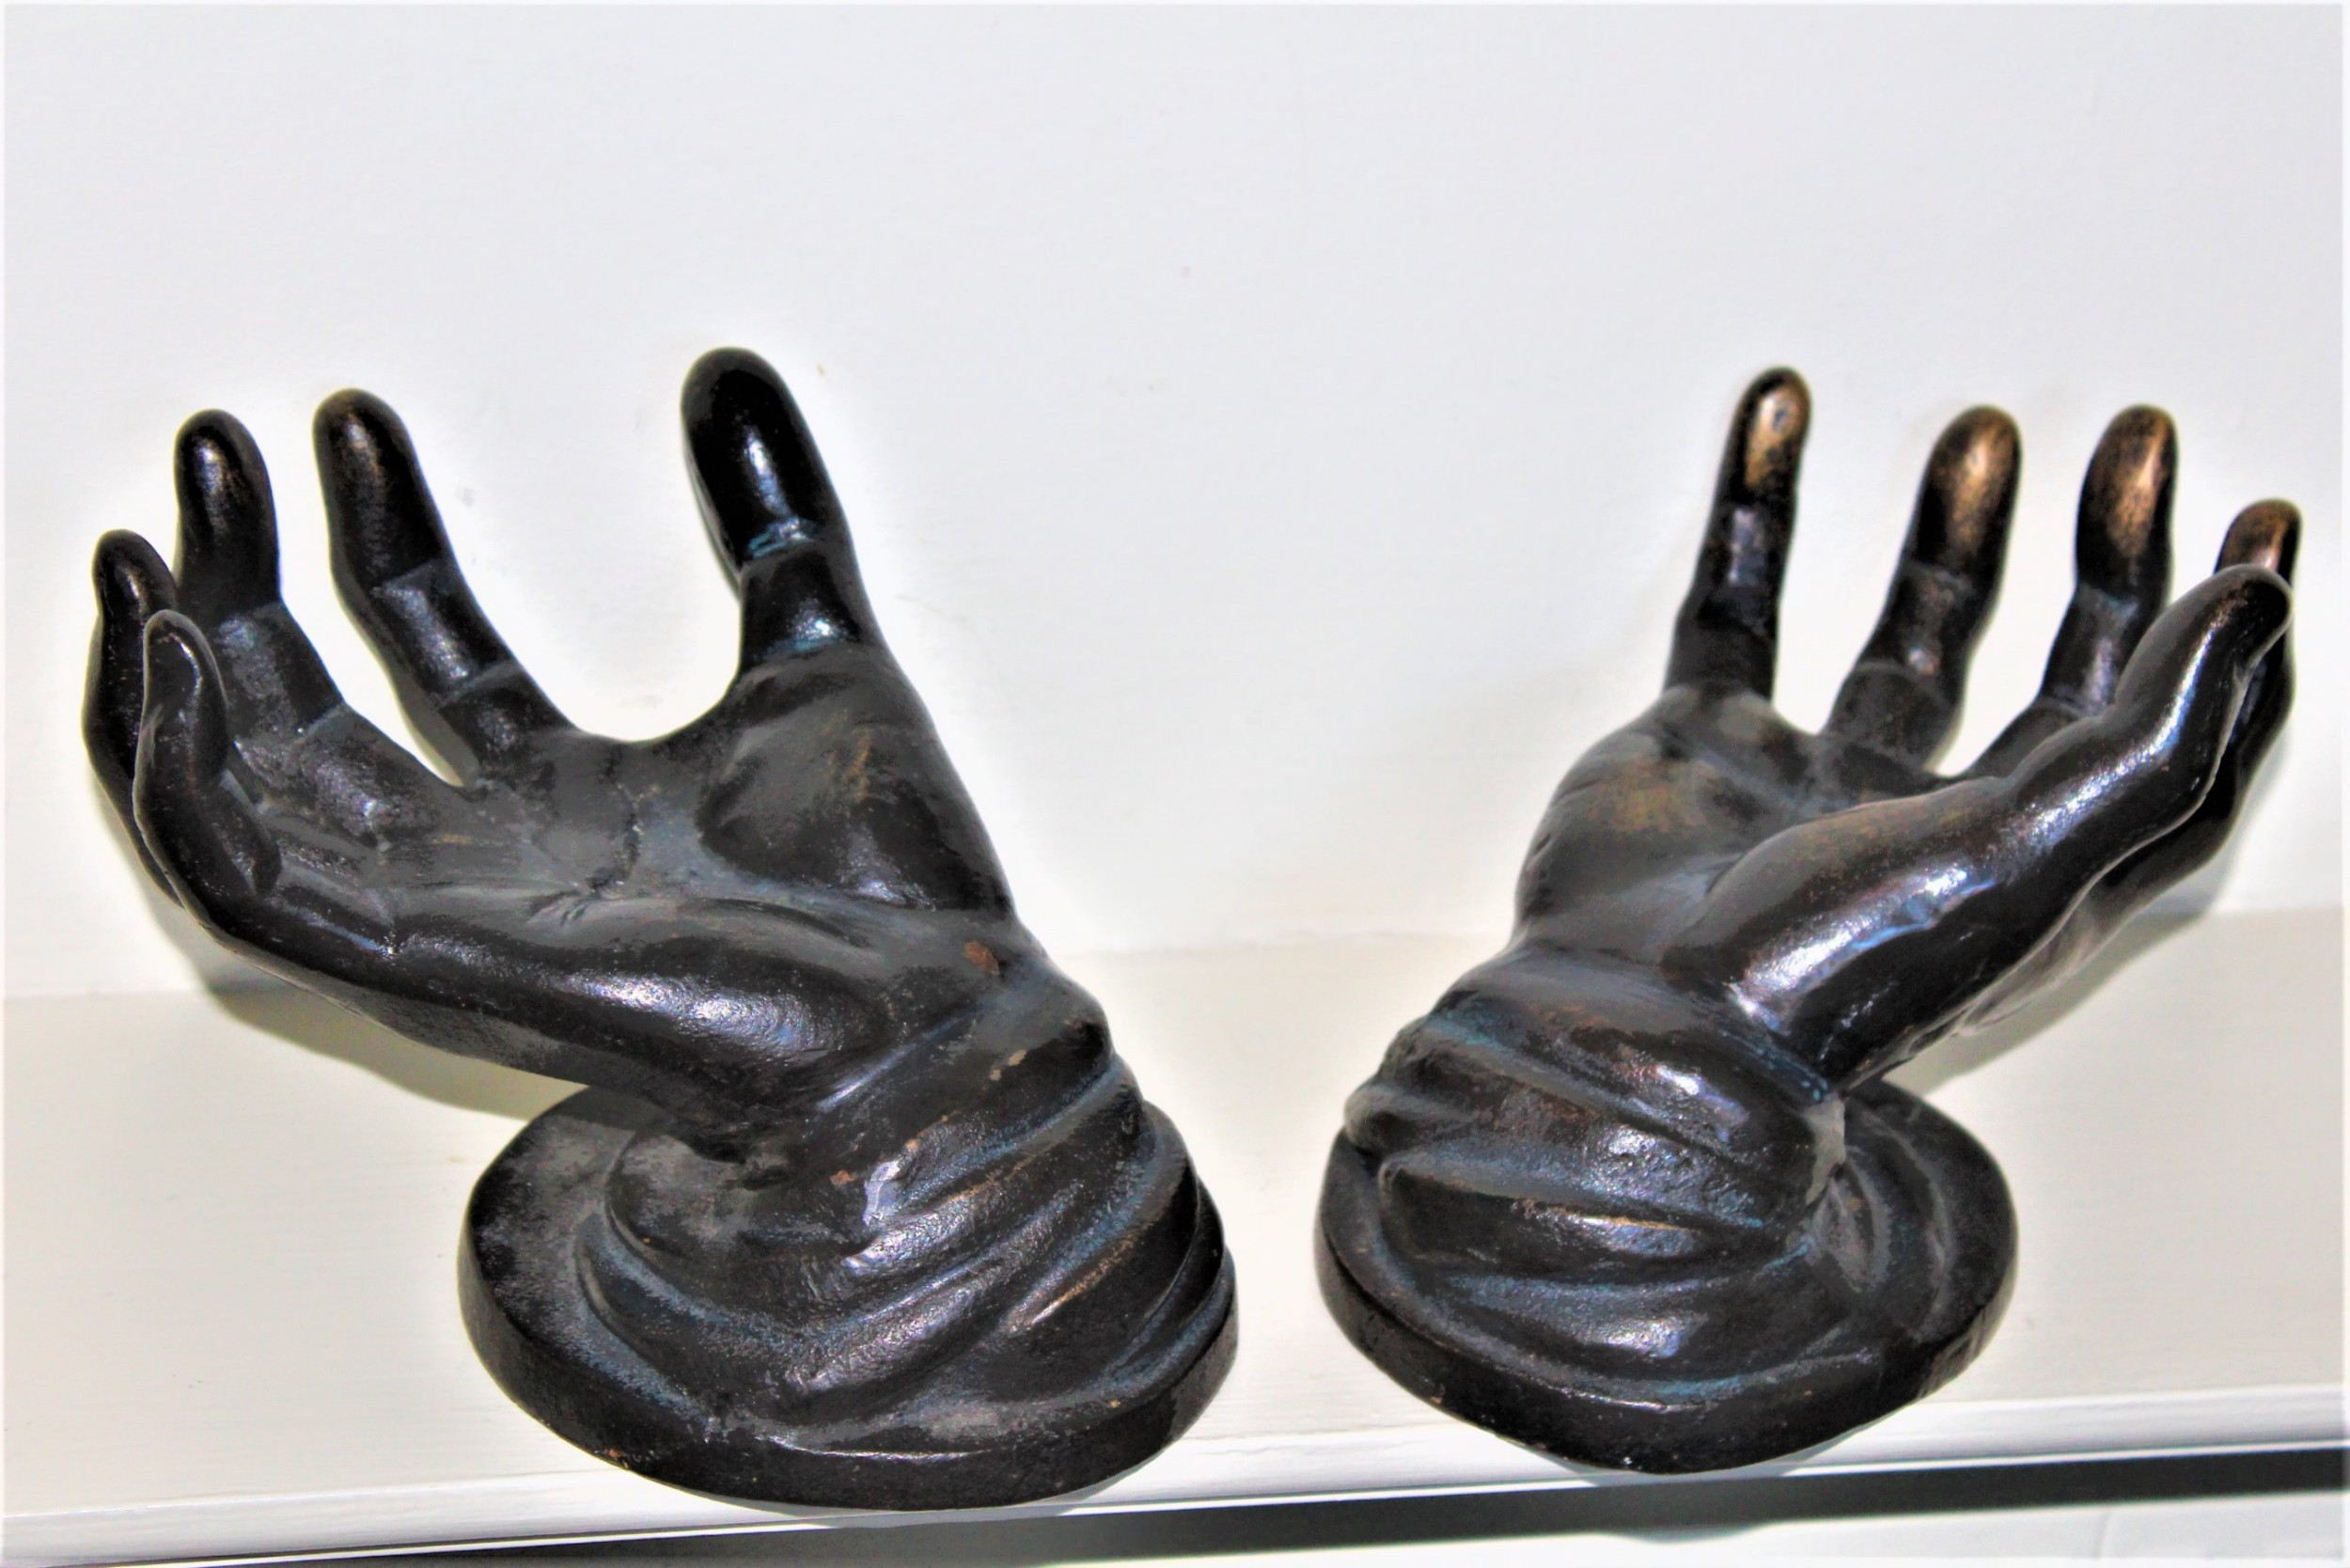 two cast solid bronze sculptures modelled as hands with palms turned up on a round base possibly english circa 1930 to 1960